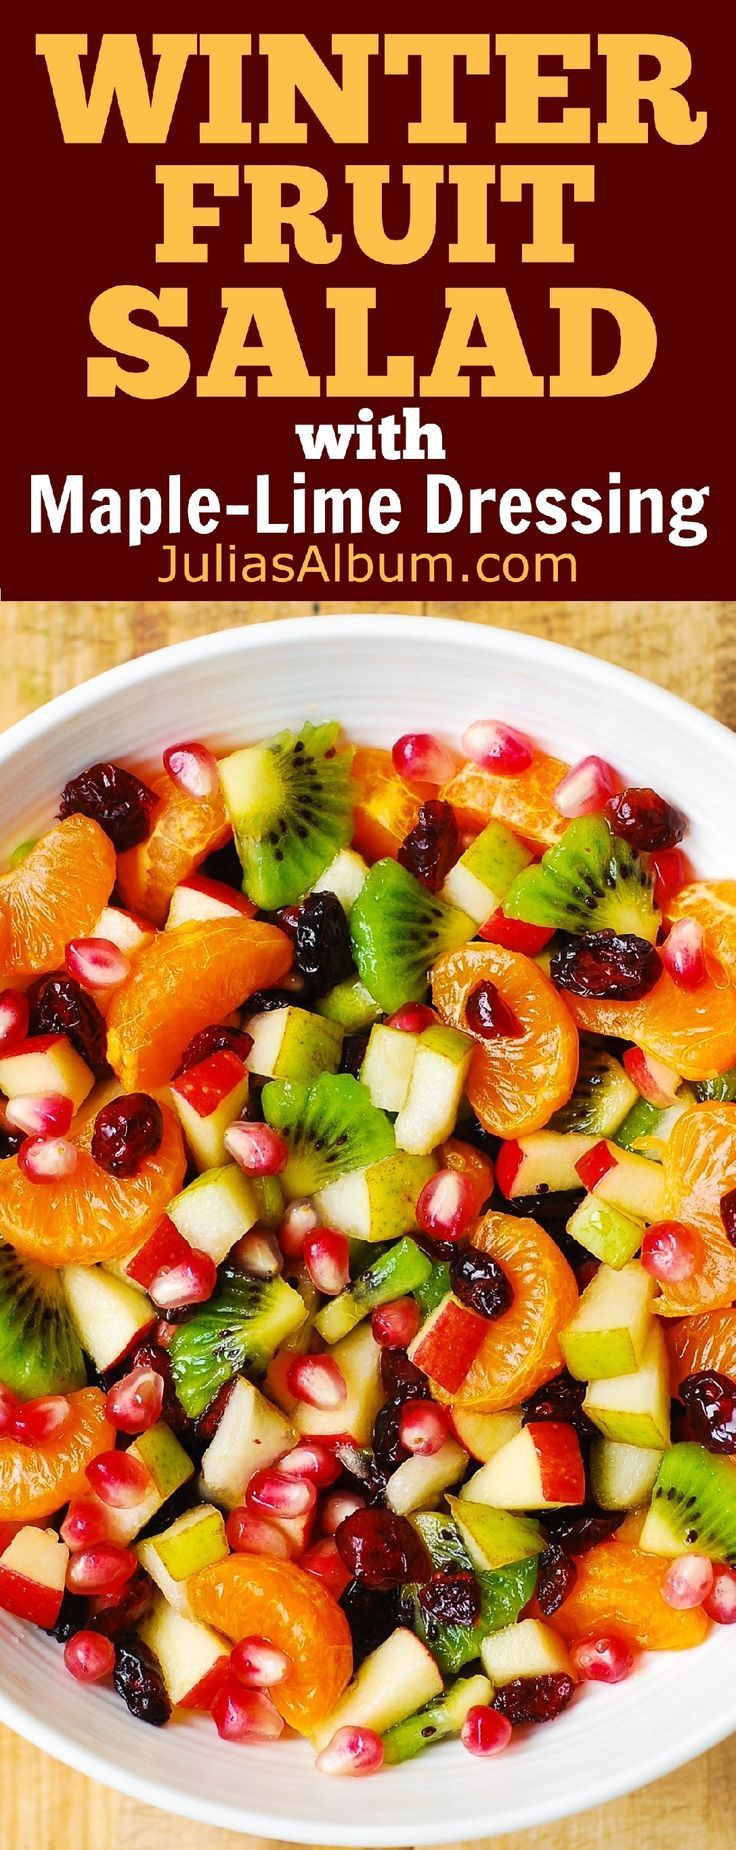 Thanksgiving, Christmas, Holiday Salad: Winter Fruit Salad with Maple-Lime Dressing - healthy, gluten free recipe.